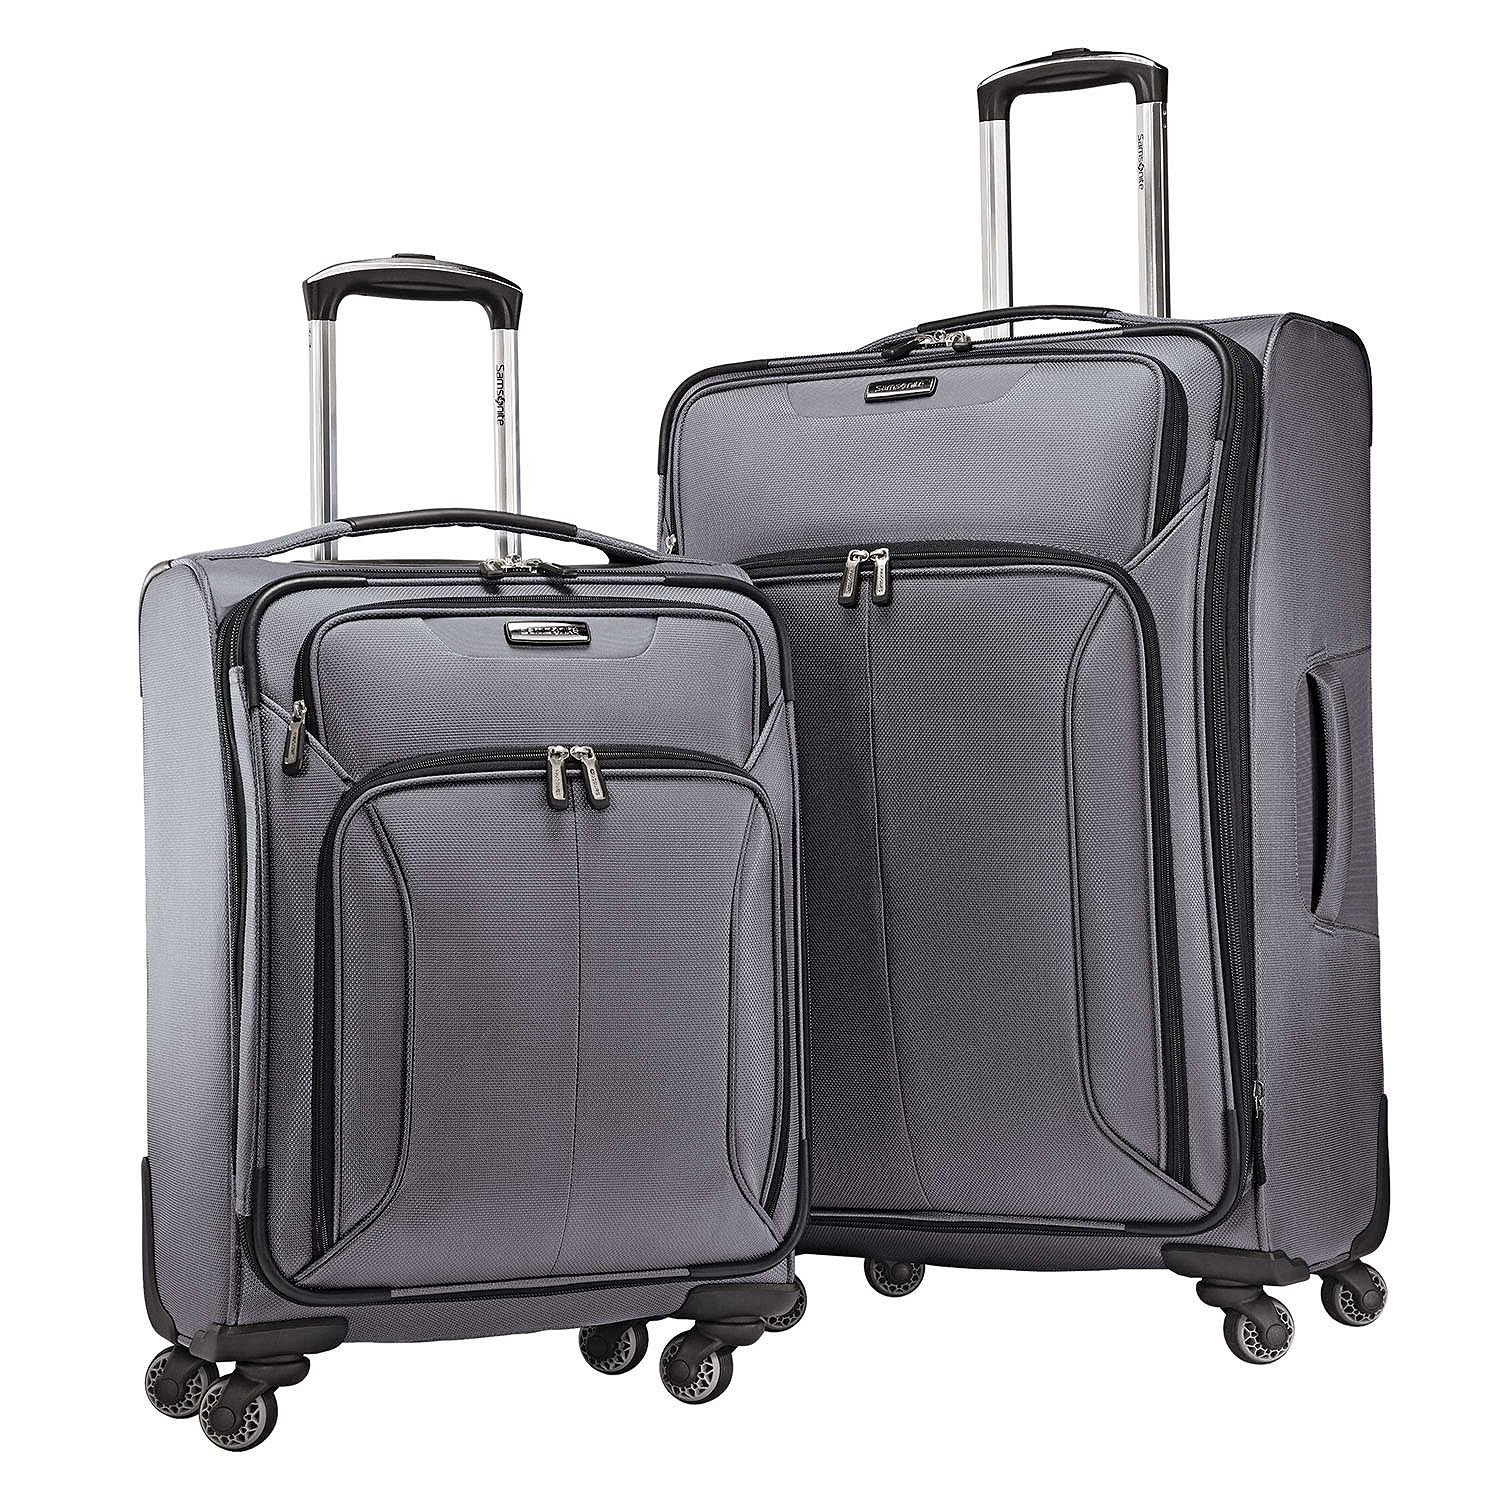 Amazon.com | Samsonite Spherion 2-Piece Luggage Set, Charcoal | Luggage Sets